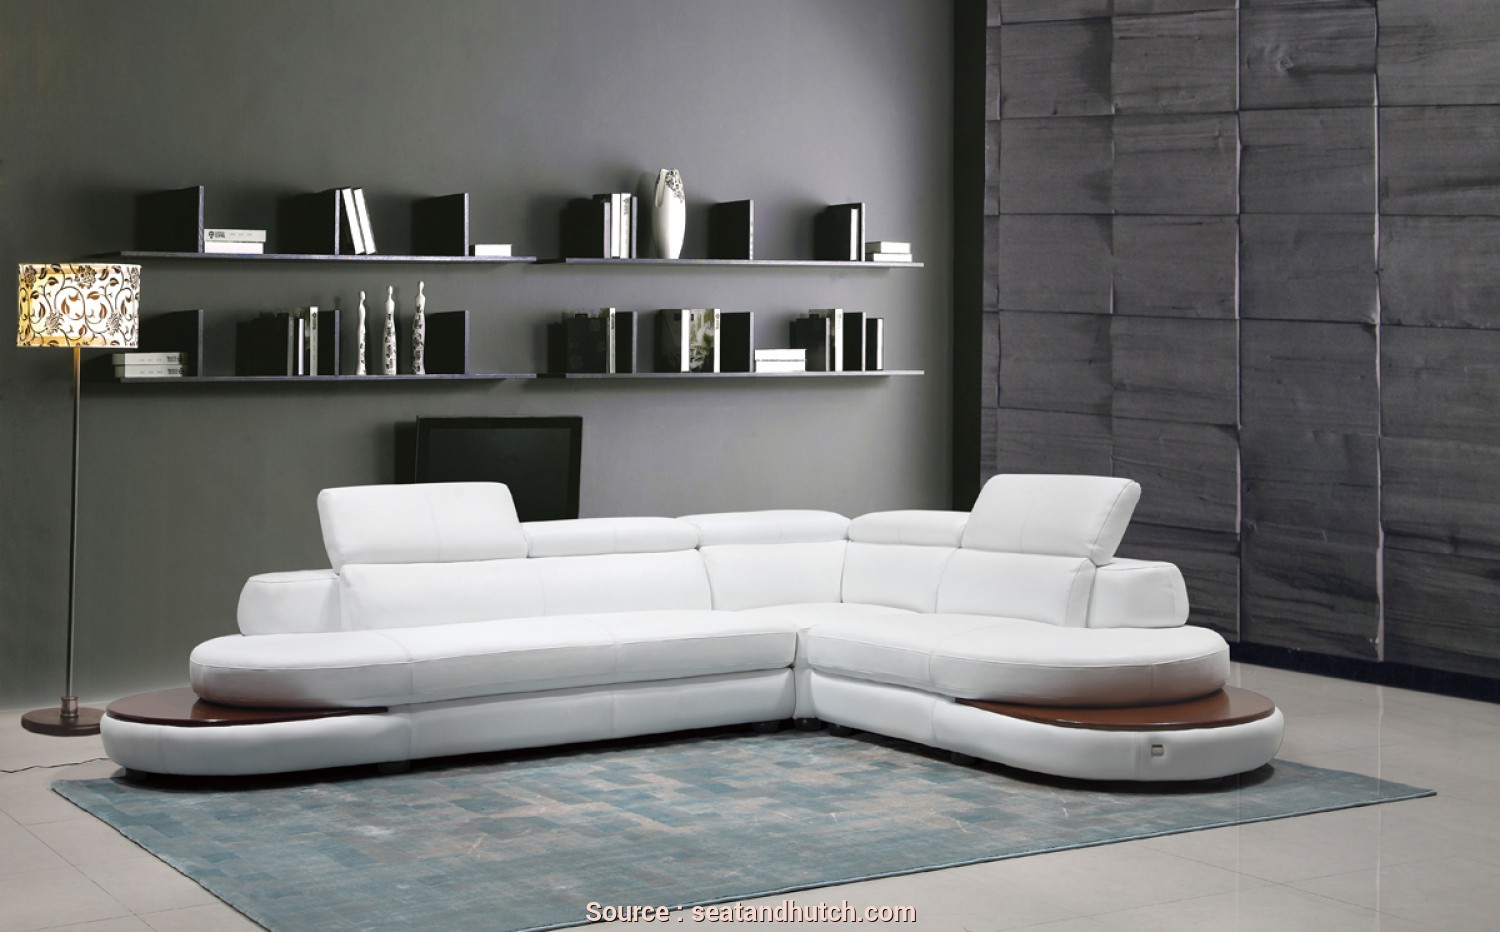 Divano Sofa Italia, Divertente Divani Casa Killian Modern White Italian Leather Sectional Sofa